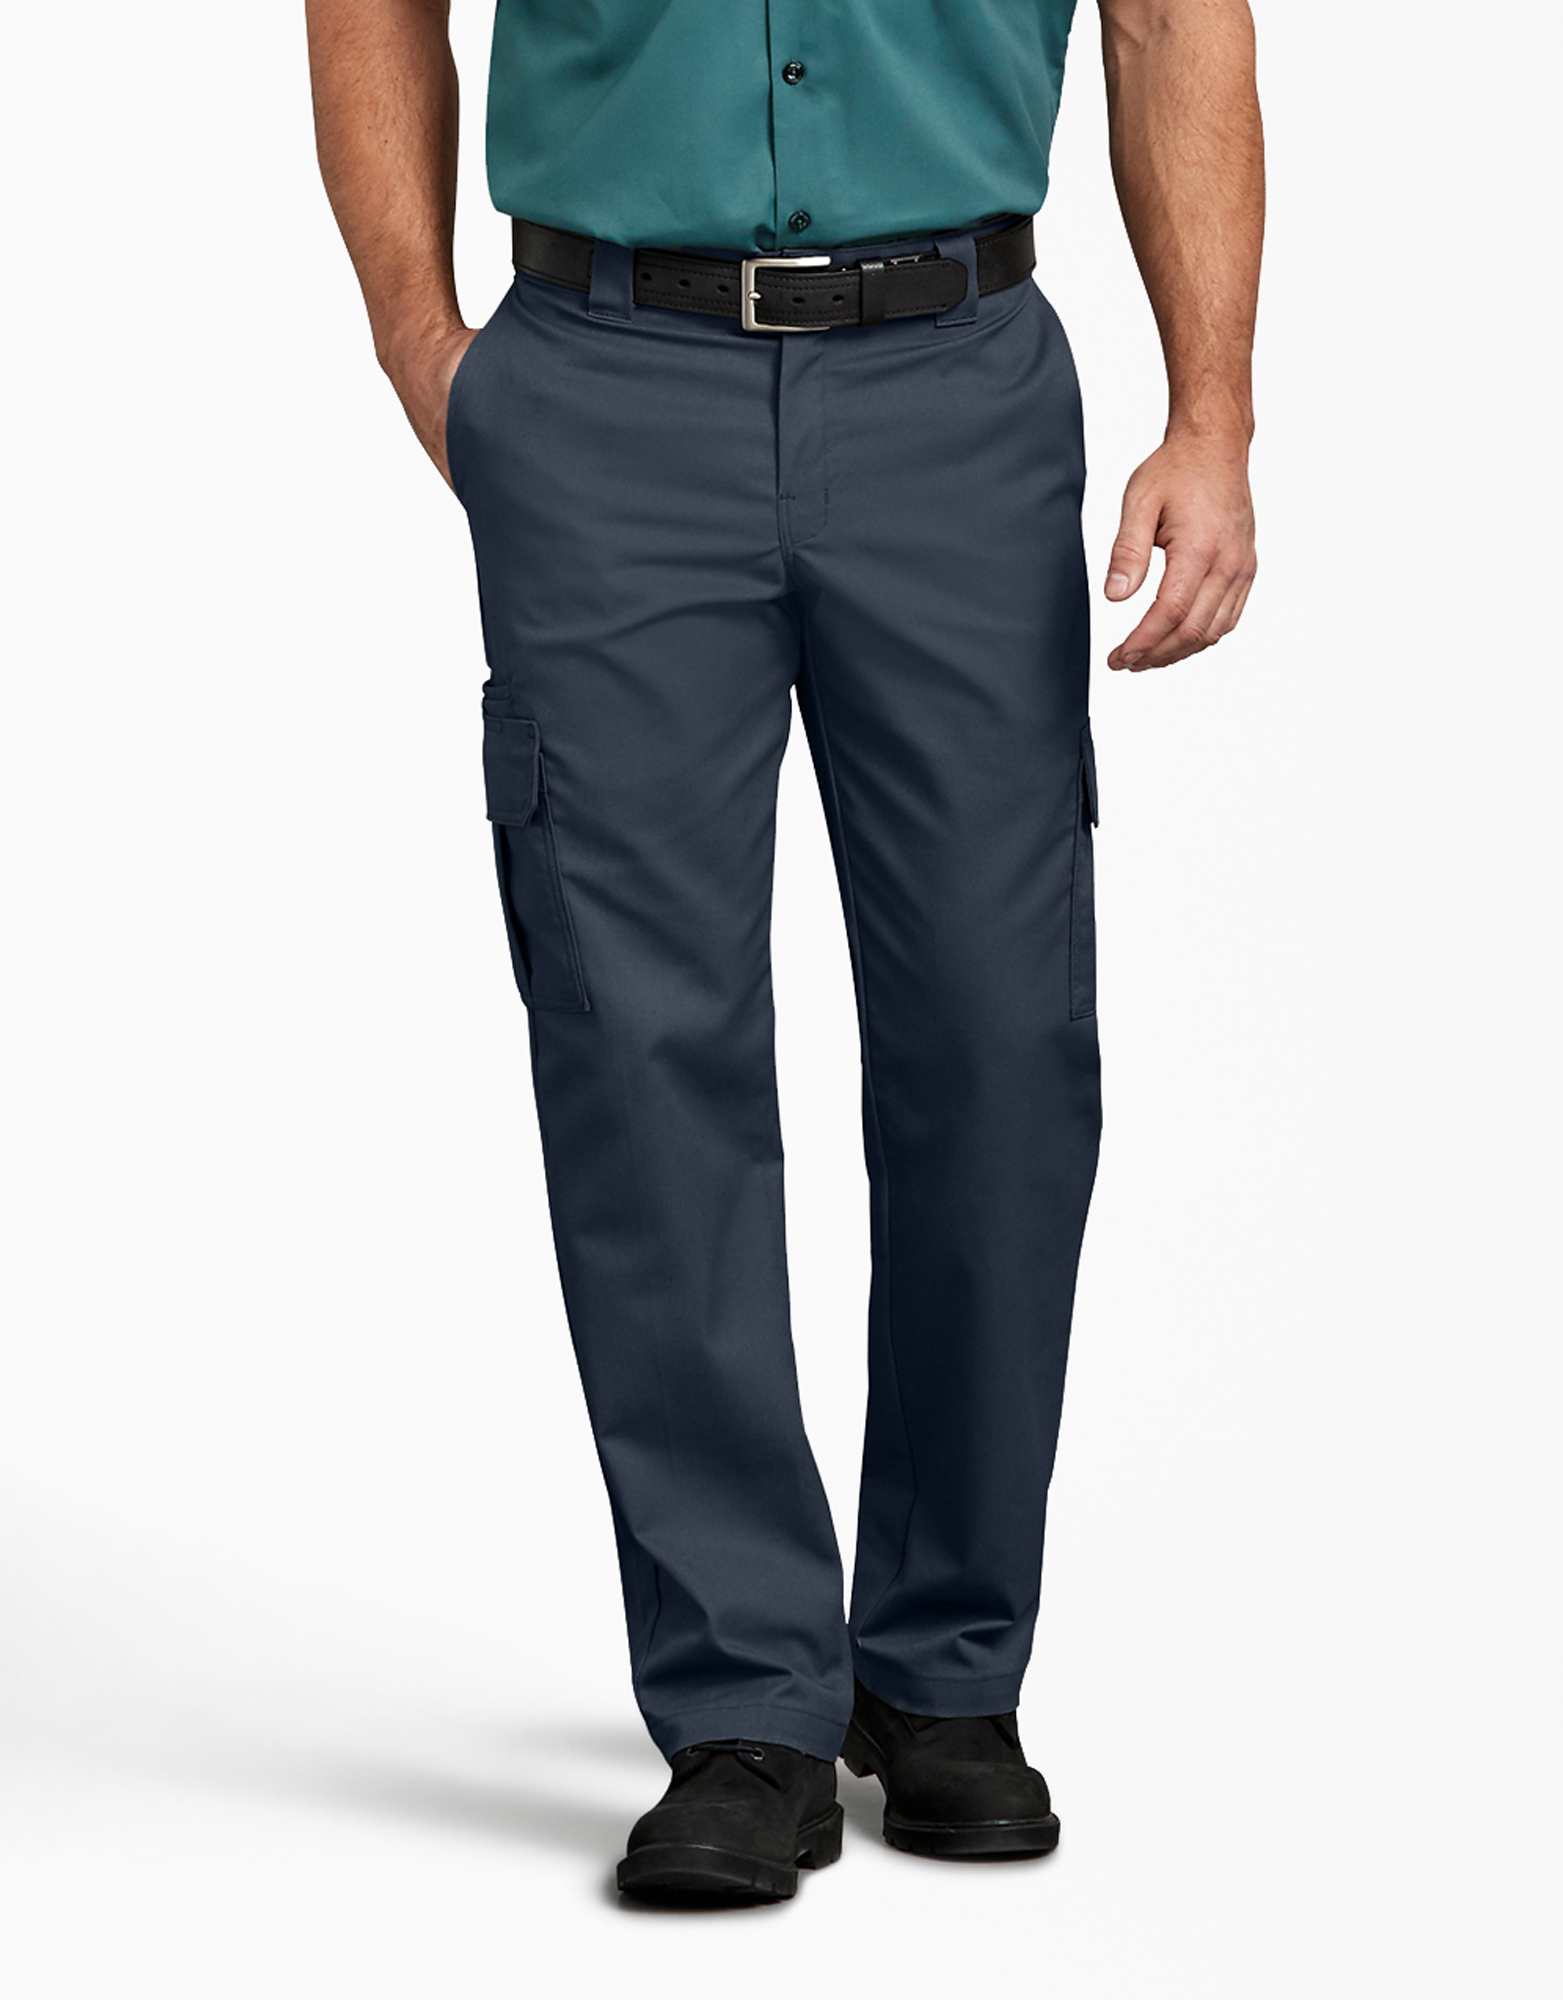 FLEX Regular Fit Straight Leg Cargo Pants - Dark Navy (DN)